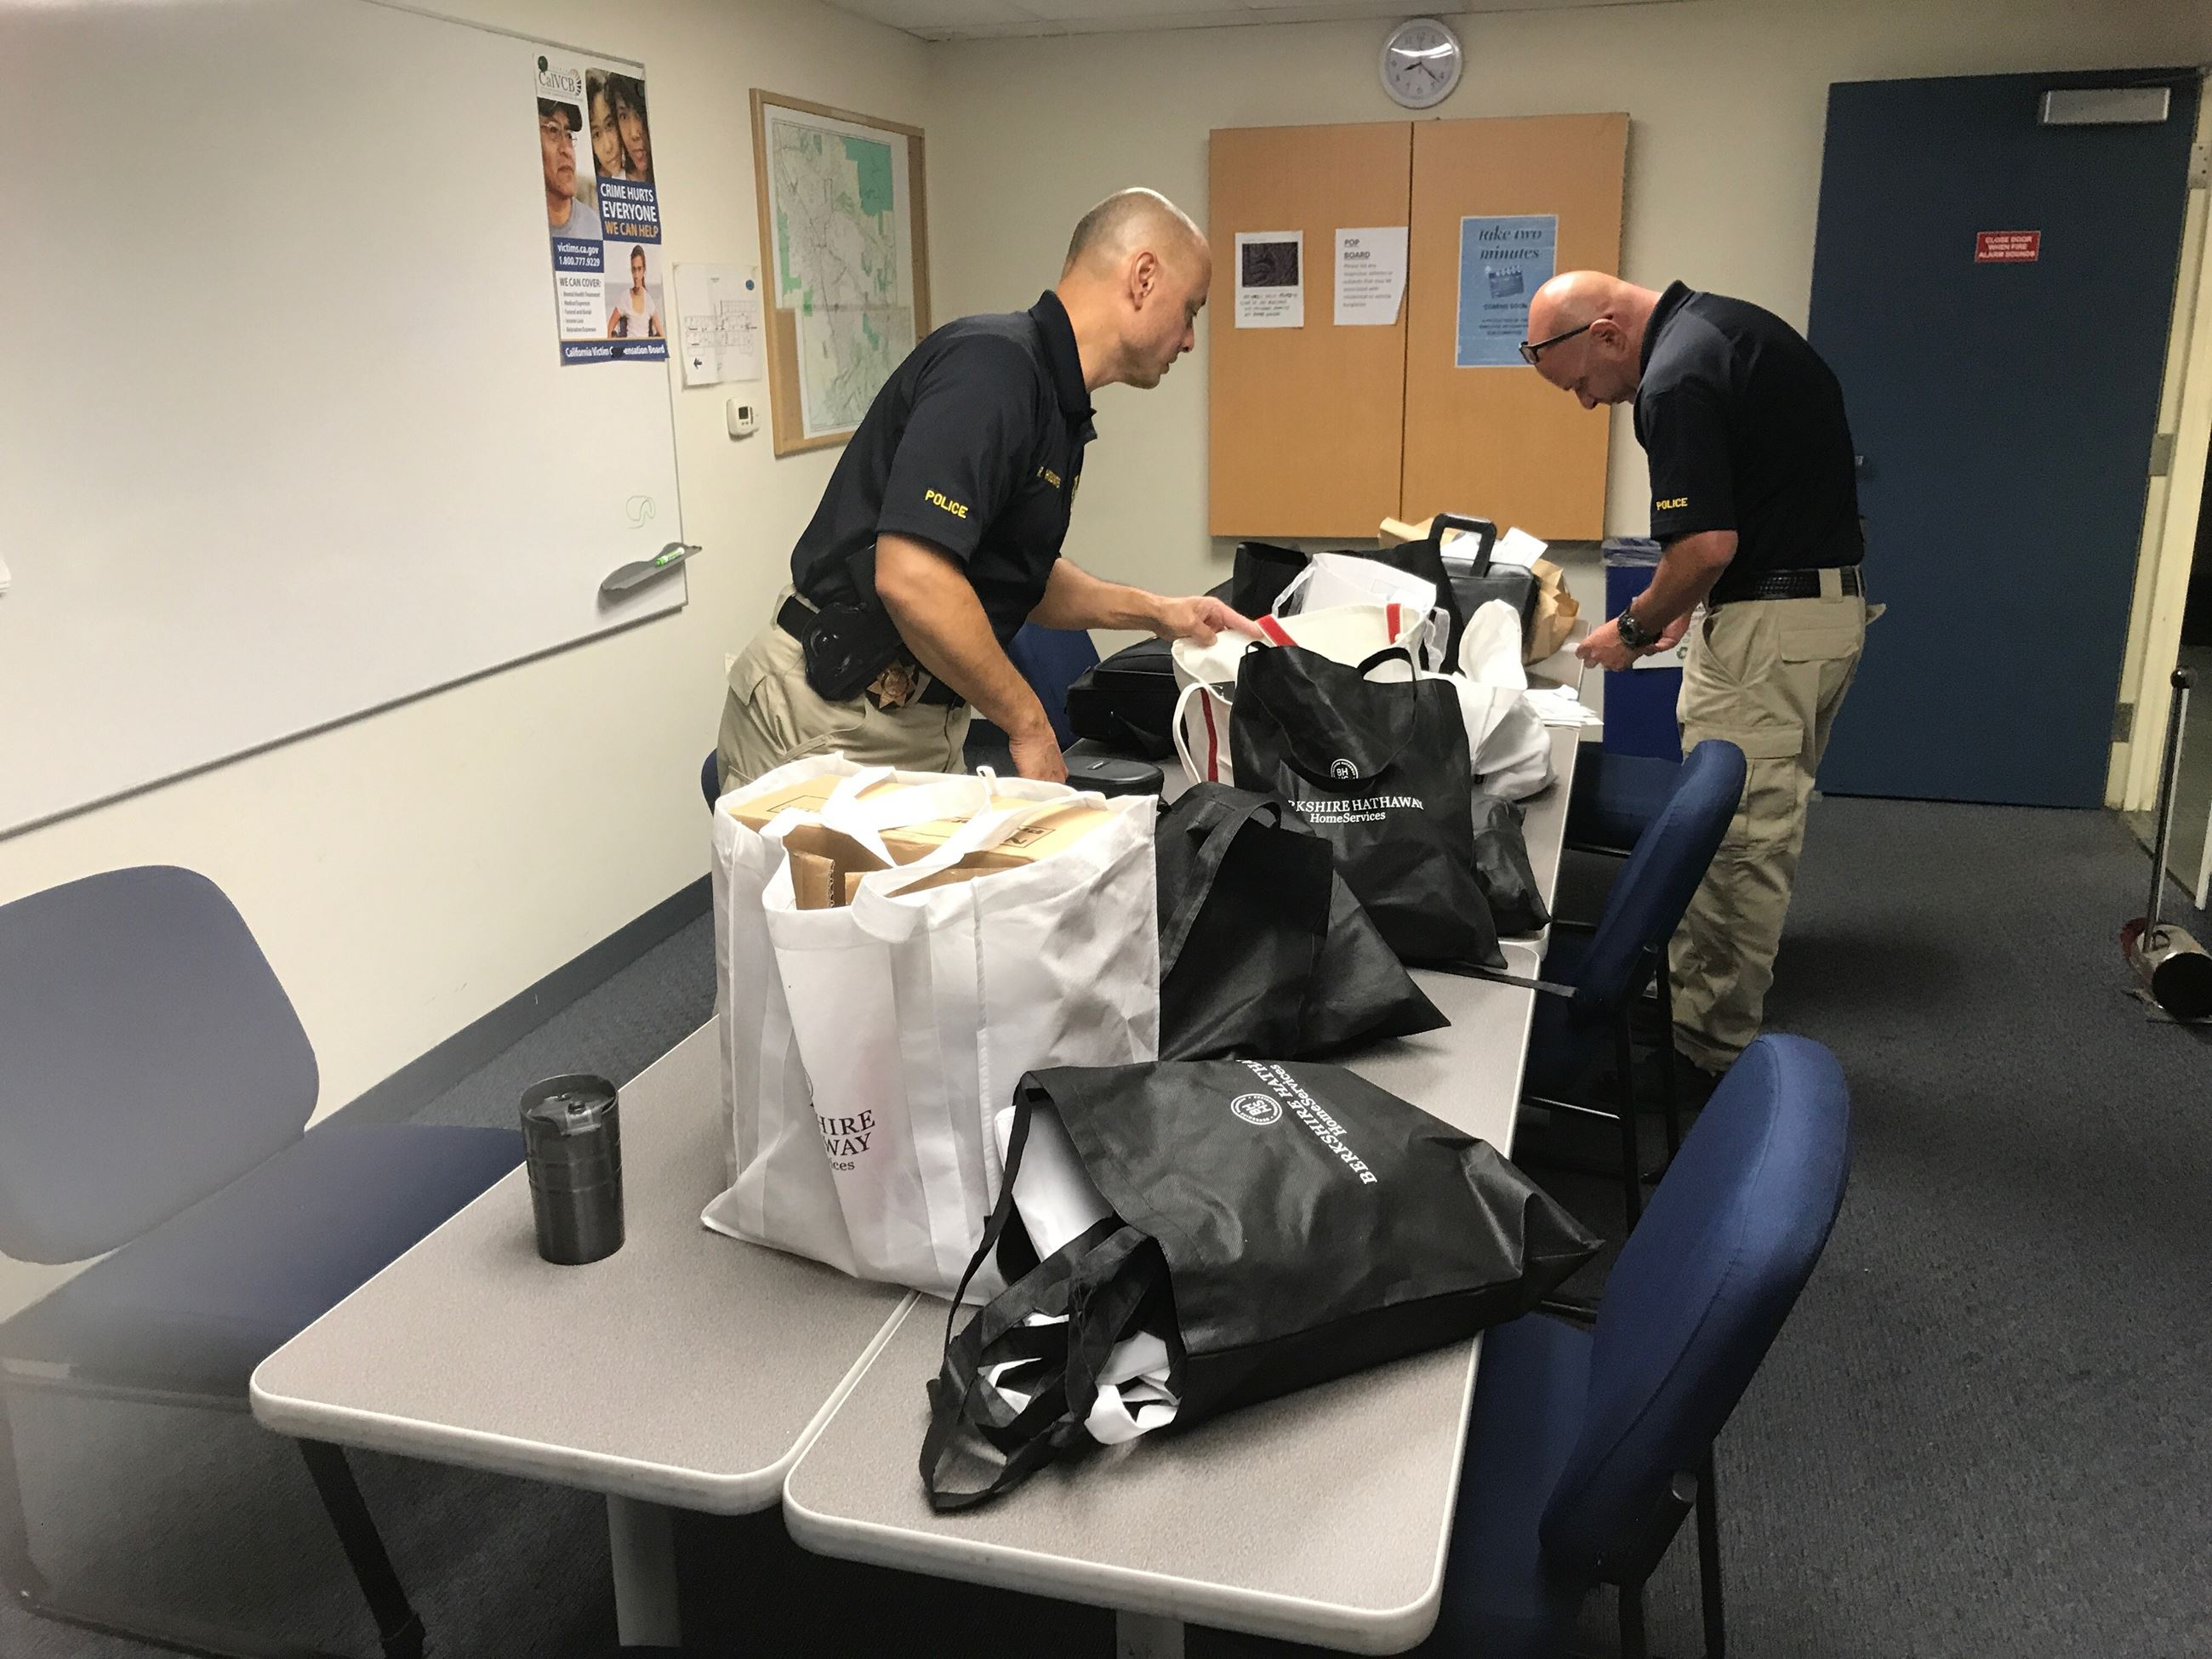 Sergeant Hoekwater and Detective Stapleton pour through mounds of recovered stolen property.